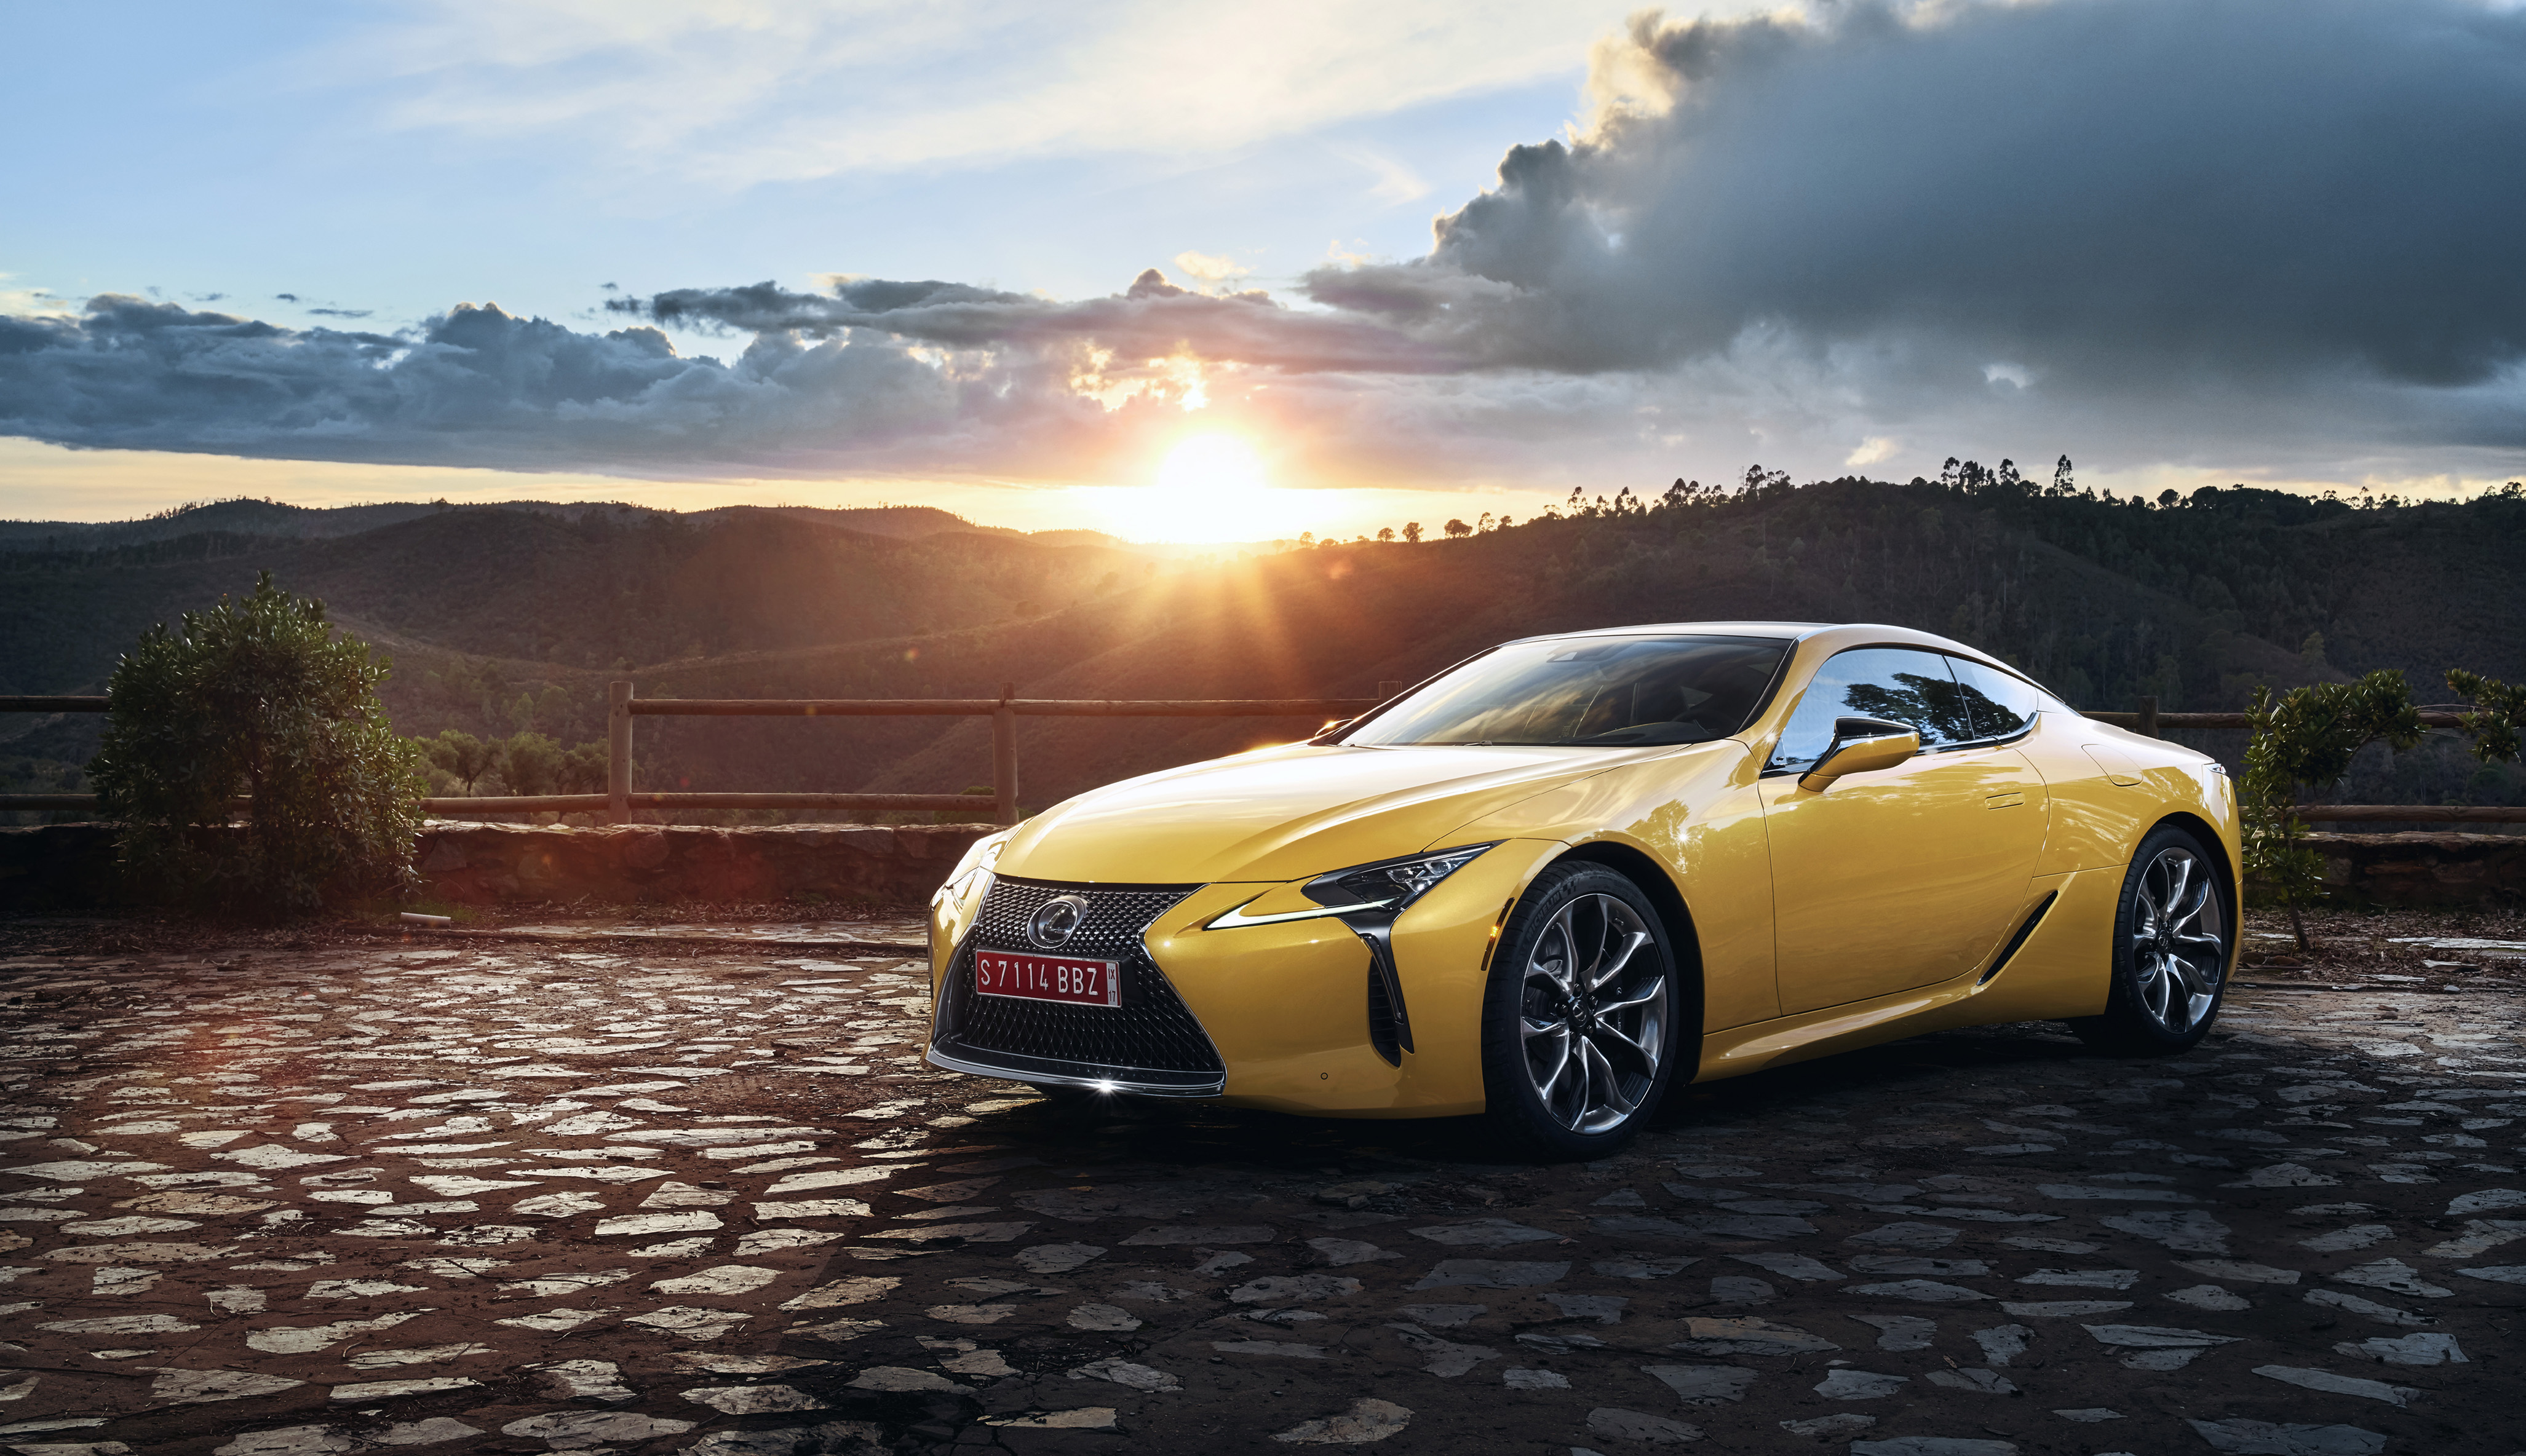 Lexus Lf Lc Price >> Lexus Announces Pricing For All New 2018 Lc Performance Coupe